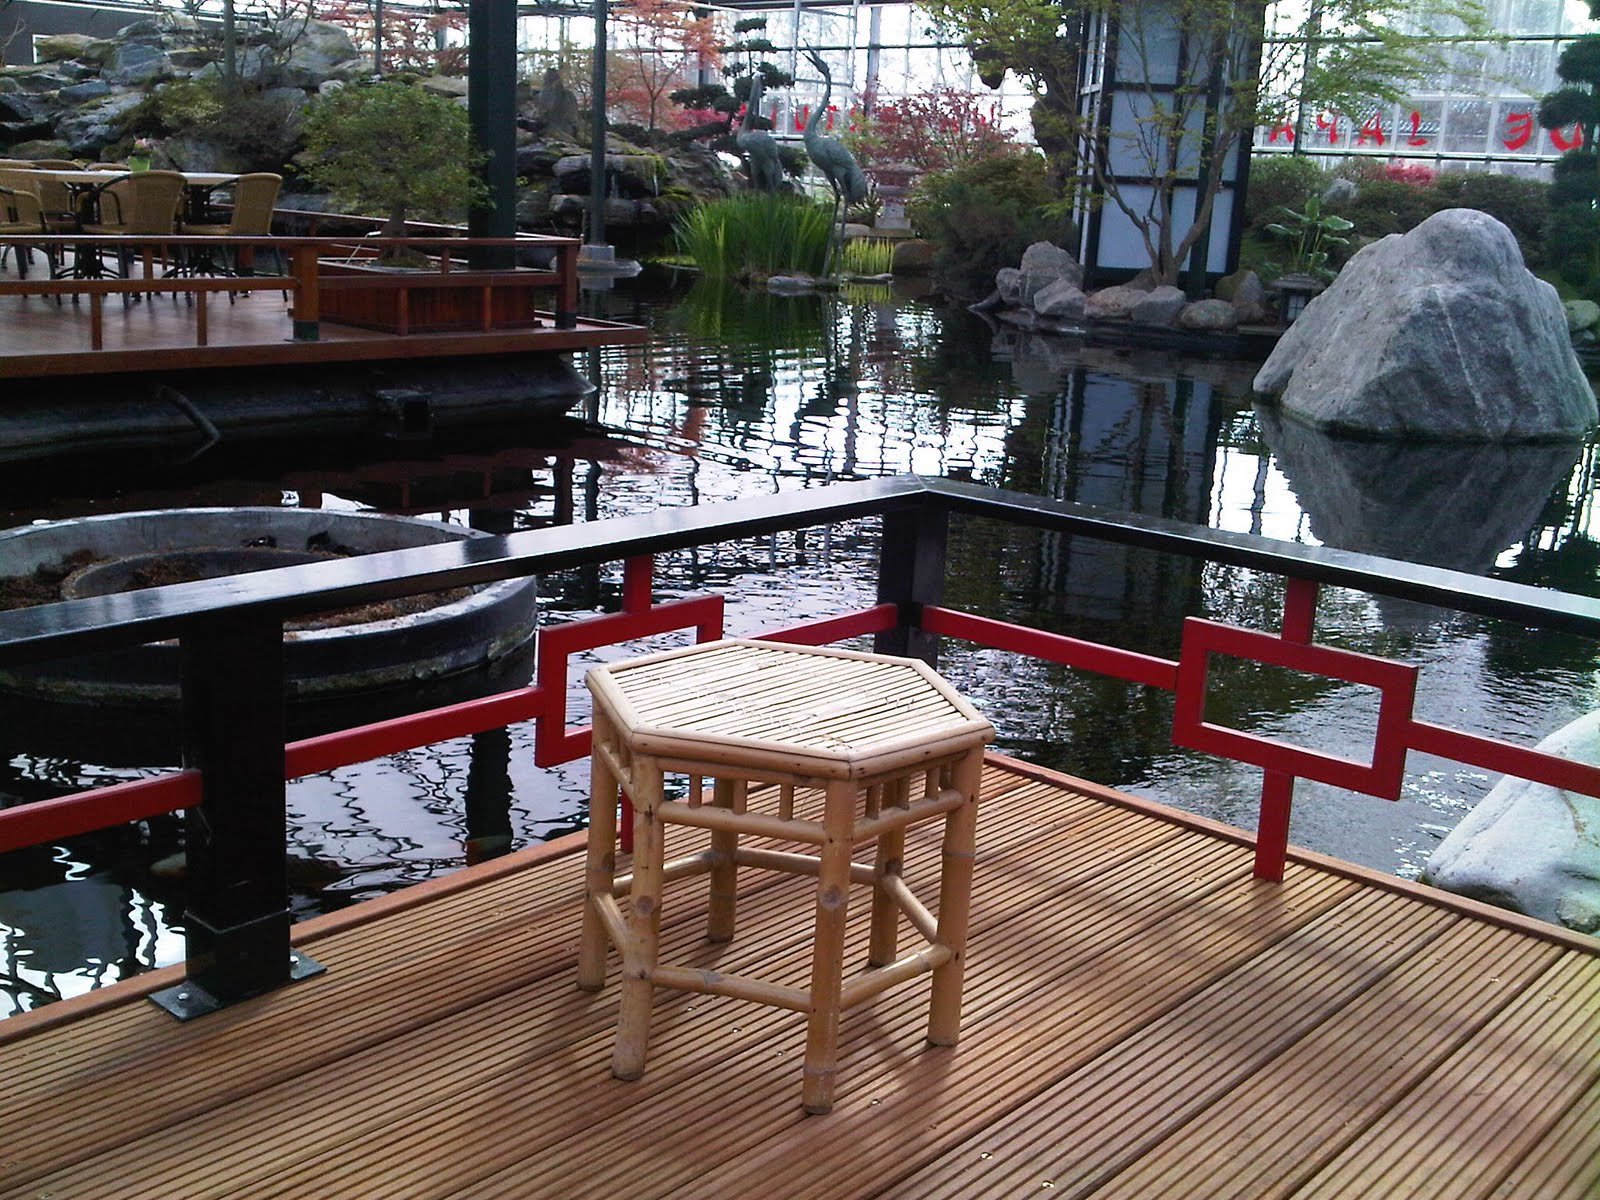 Japanese Watergarden in West Holland – Girl from the barrio